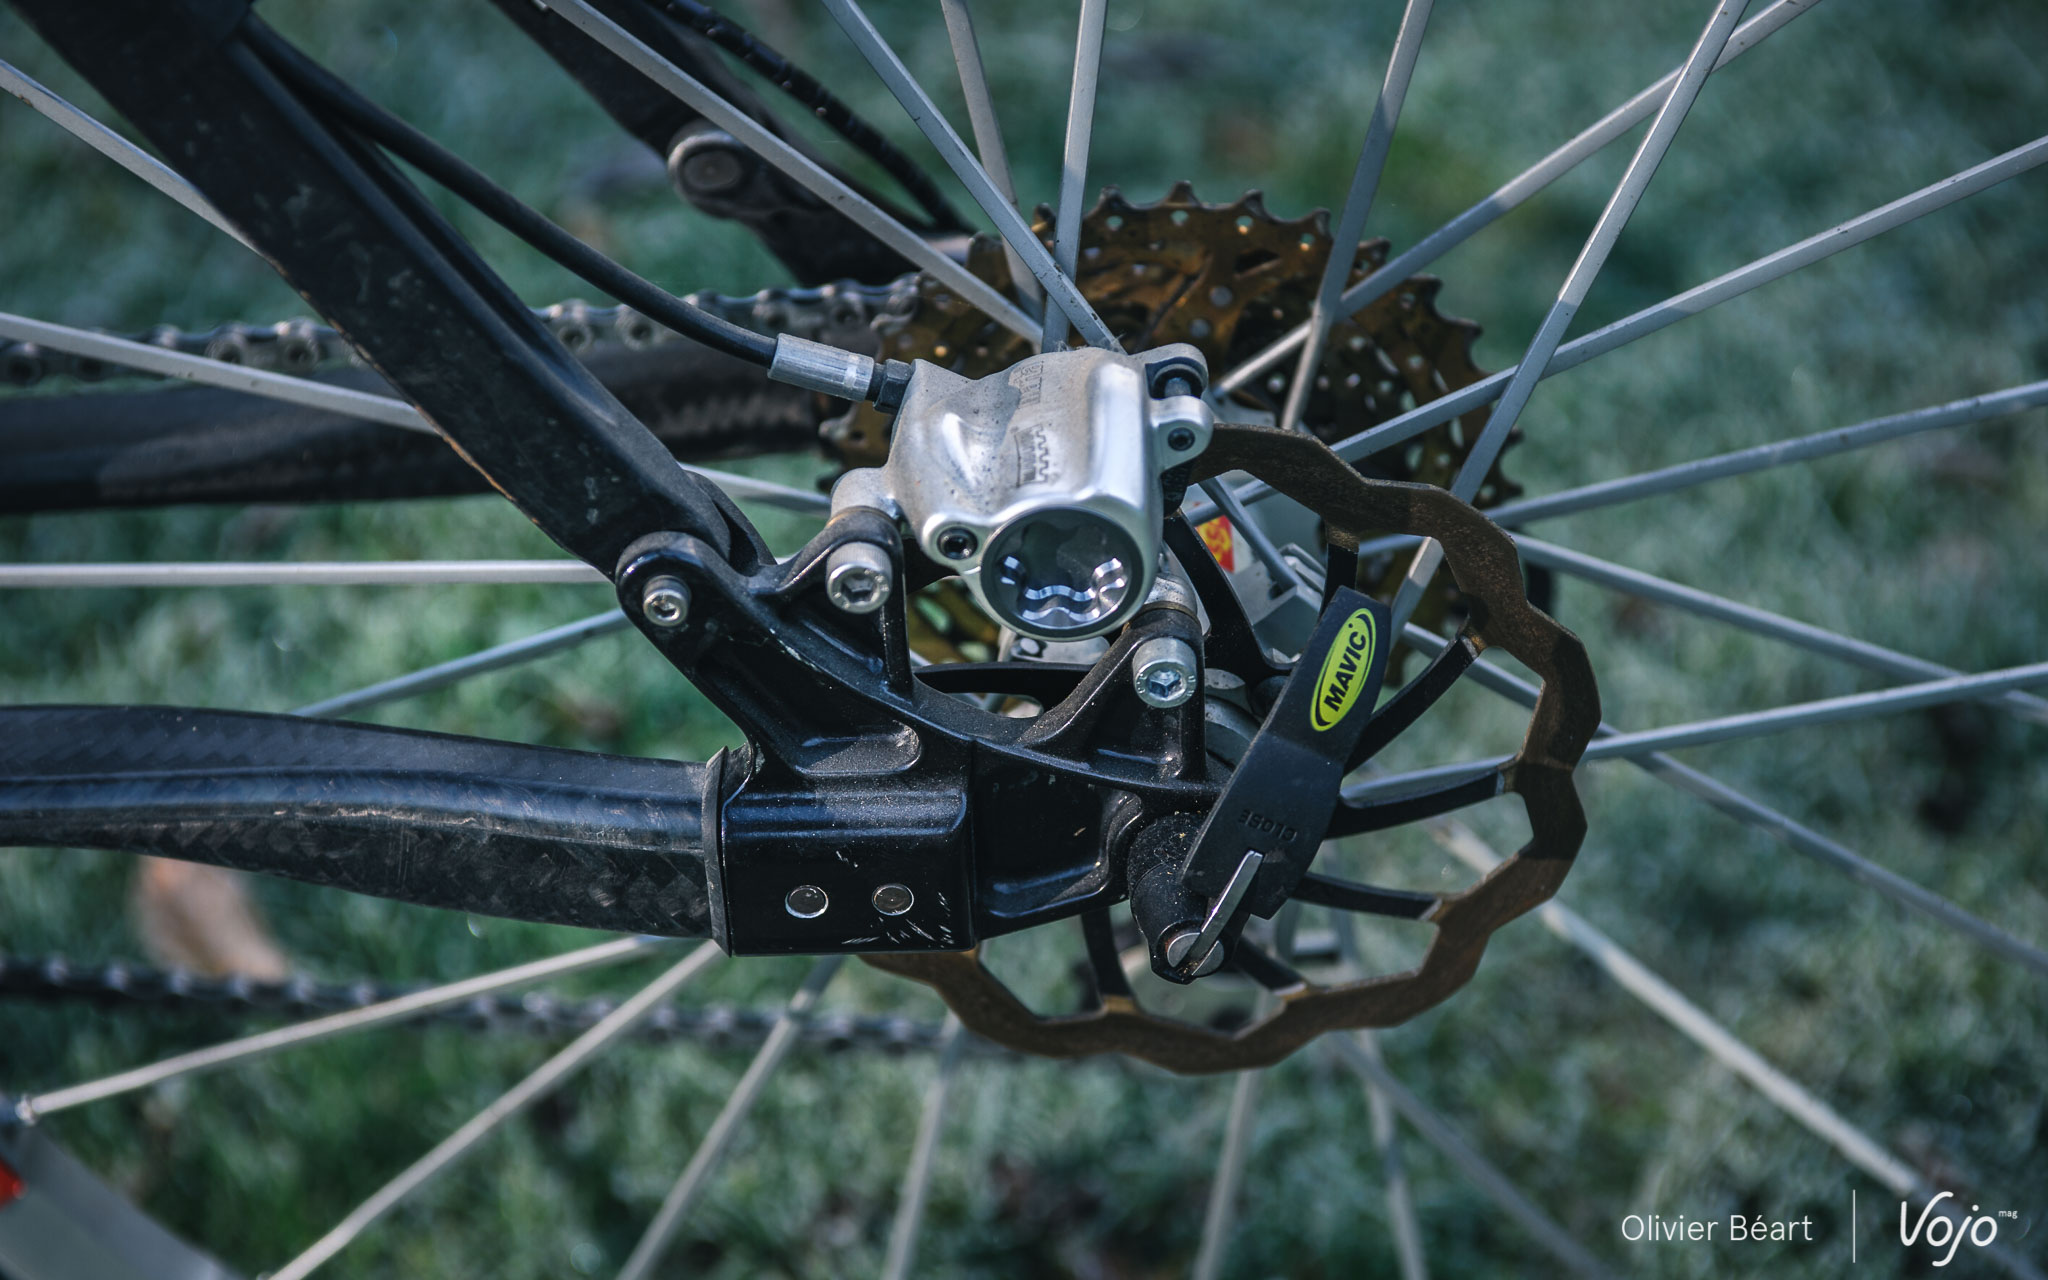 Cannondale_Scalpel_Super6_Roel_Paulissen_Copyright_OBeart_Vojomag-36